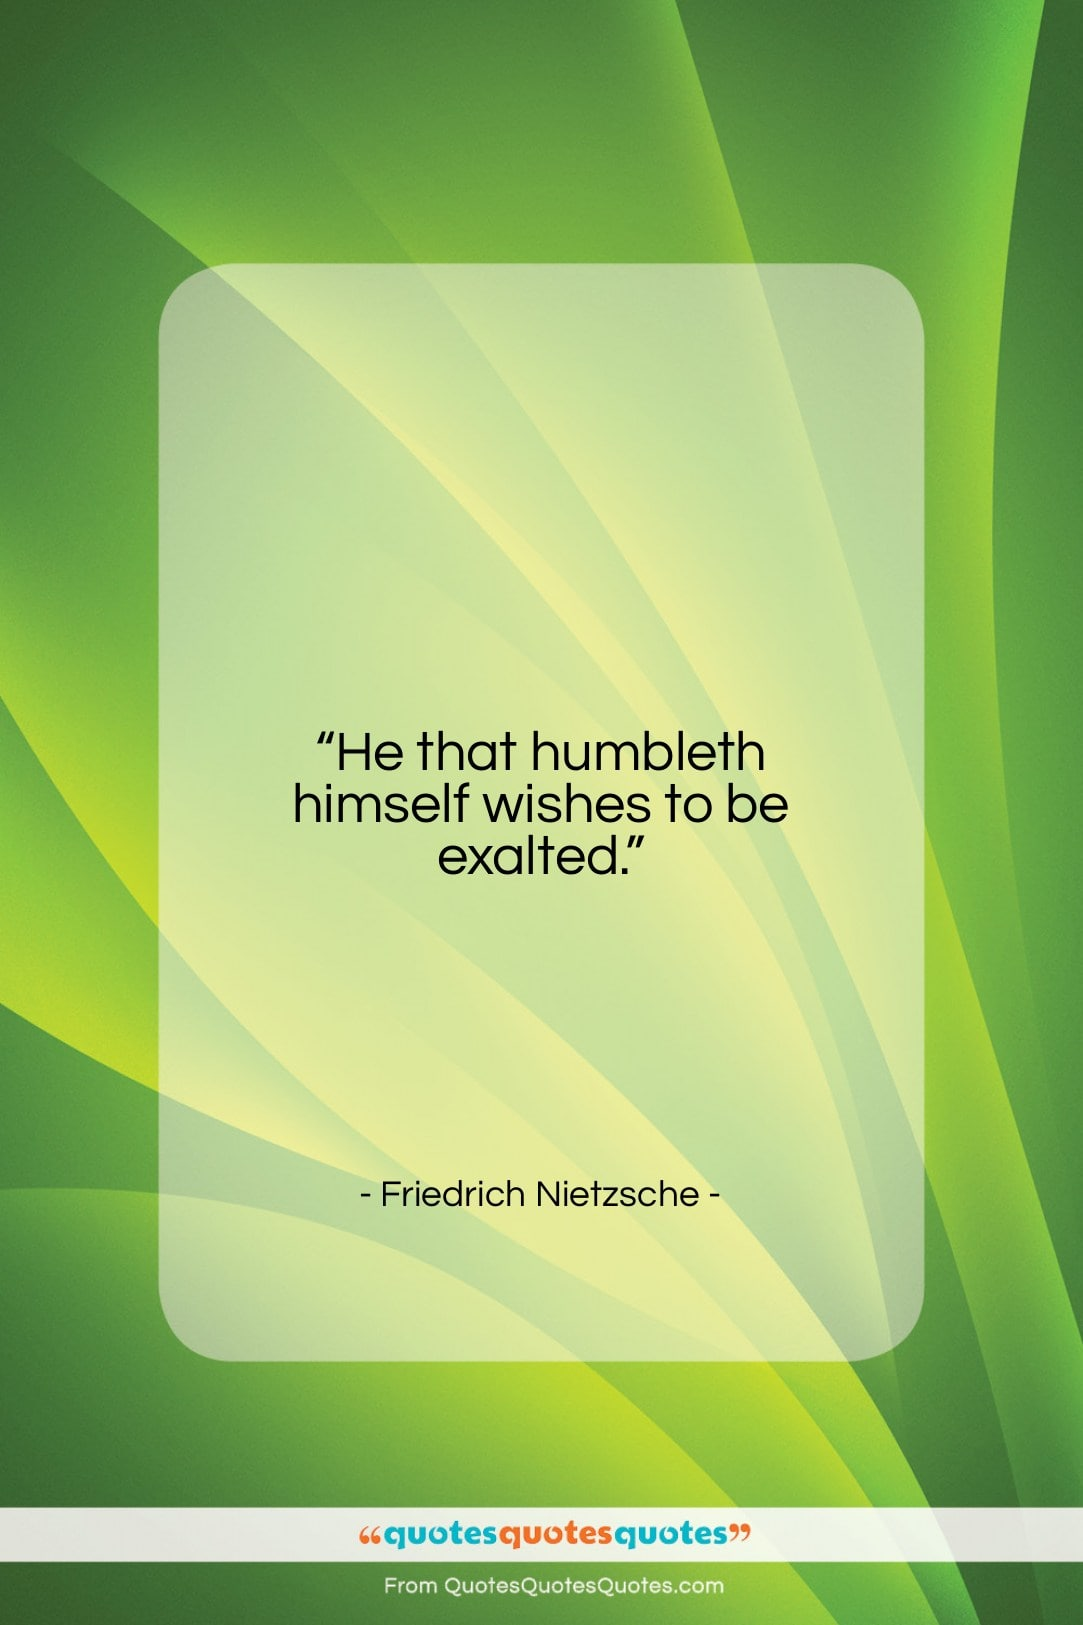 """Friedrich Nietzsche quote: """"He that humbleth himself wishes to be…""""- at QuotesQuotesQuotes.com"""